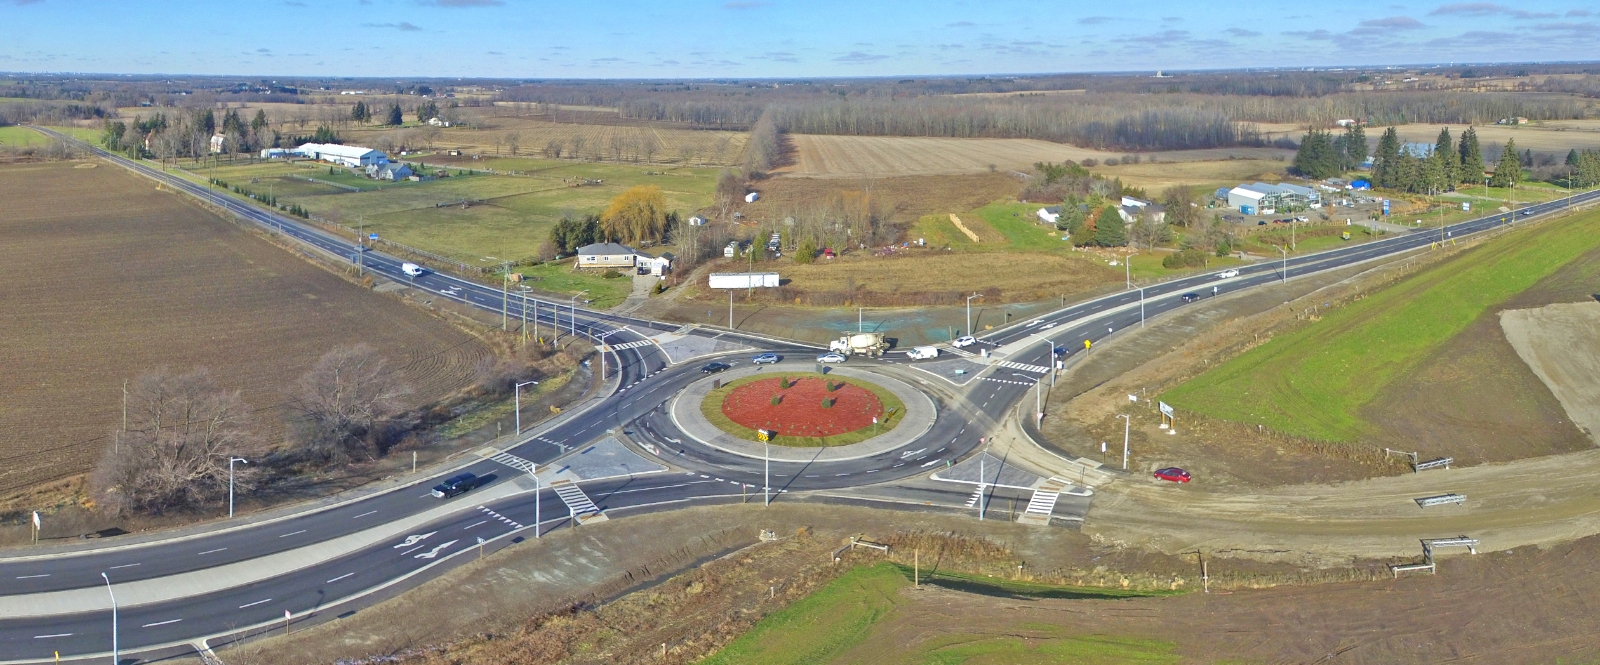 Roundabout in rural setting